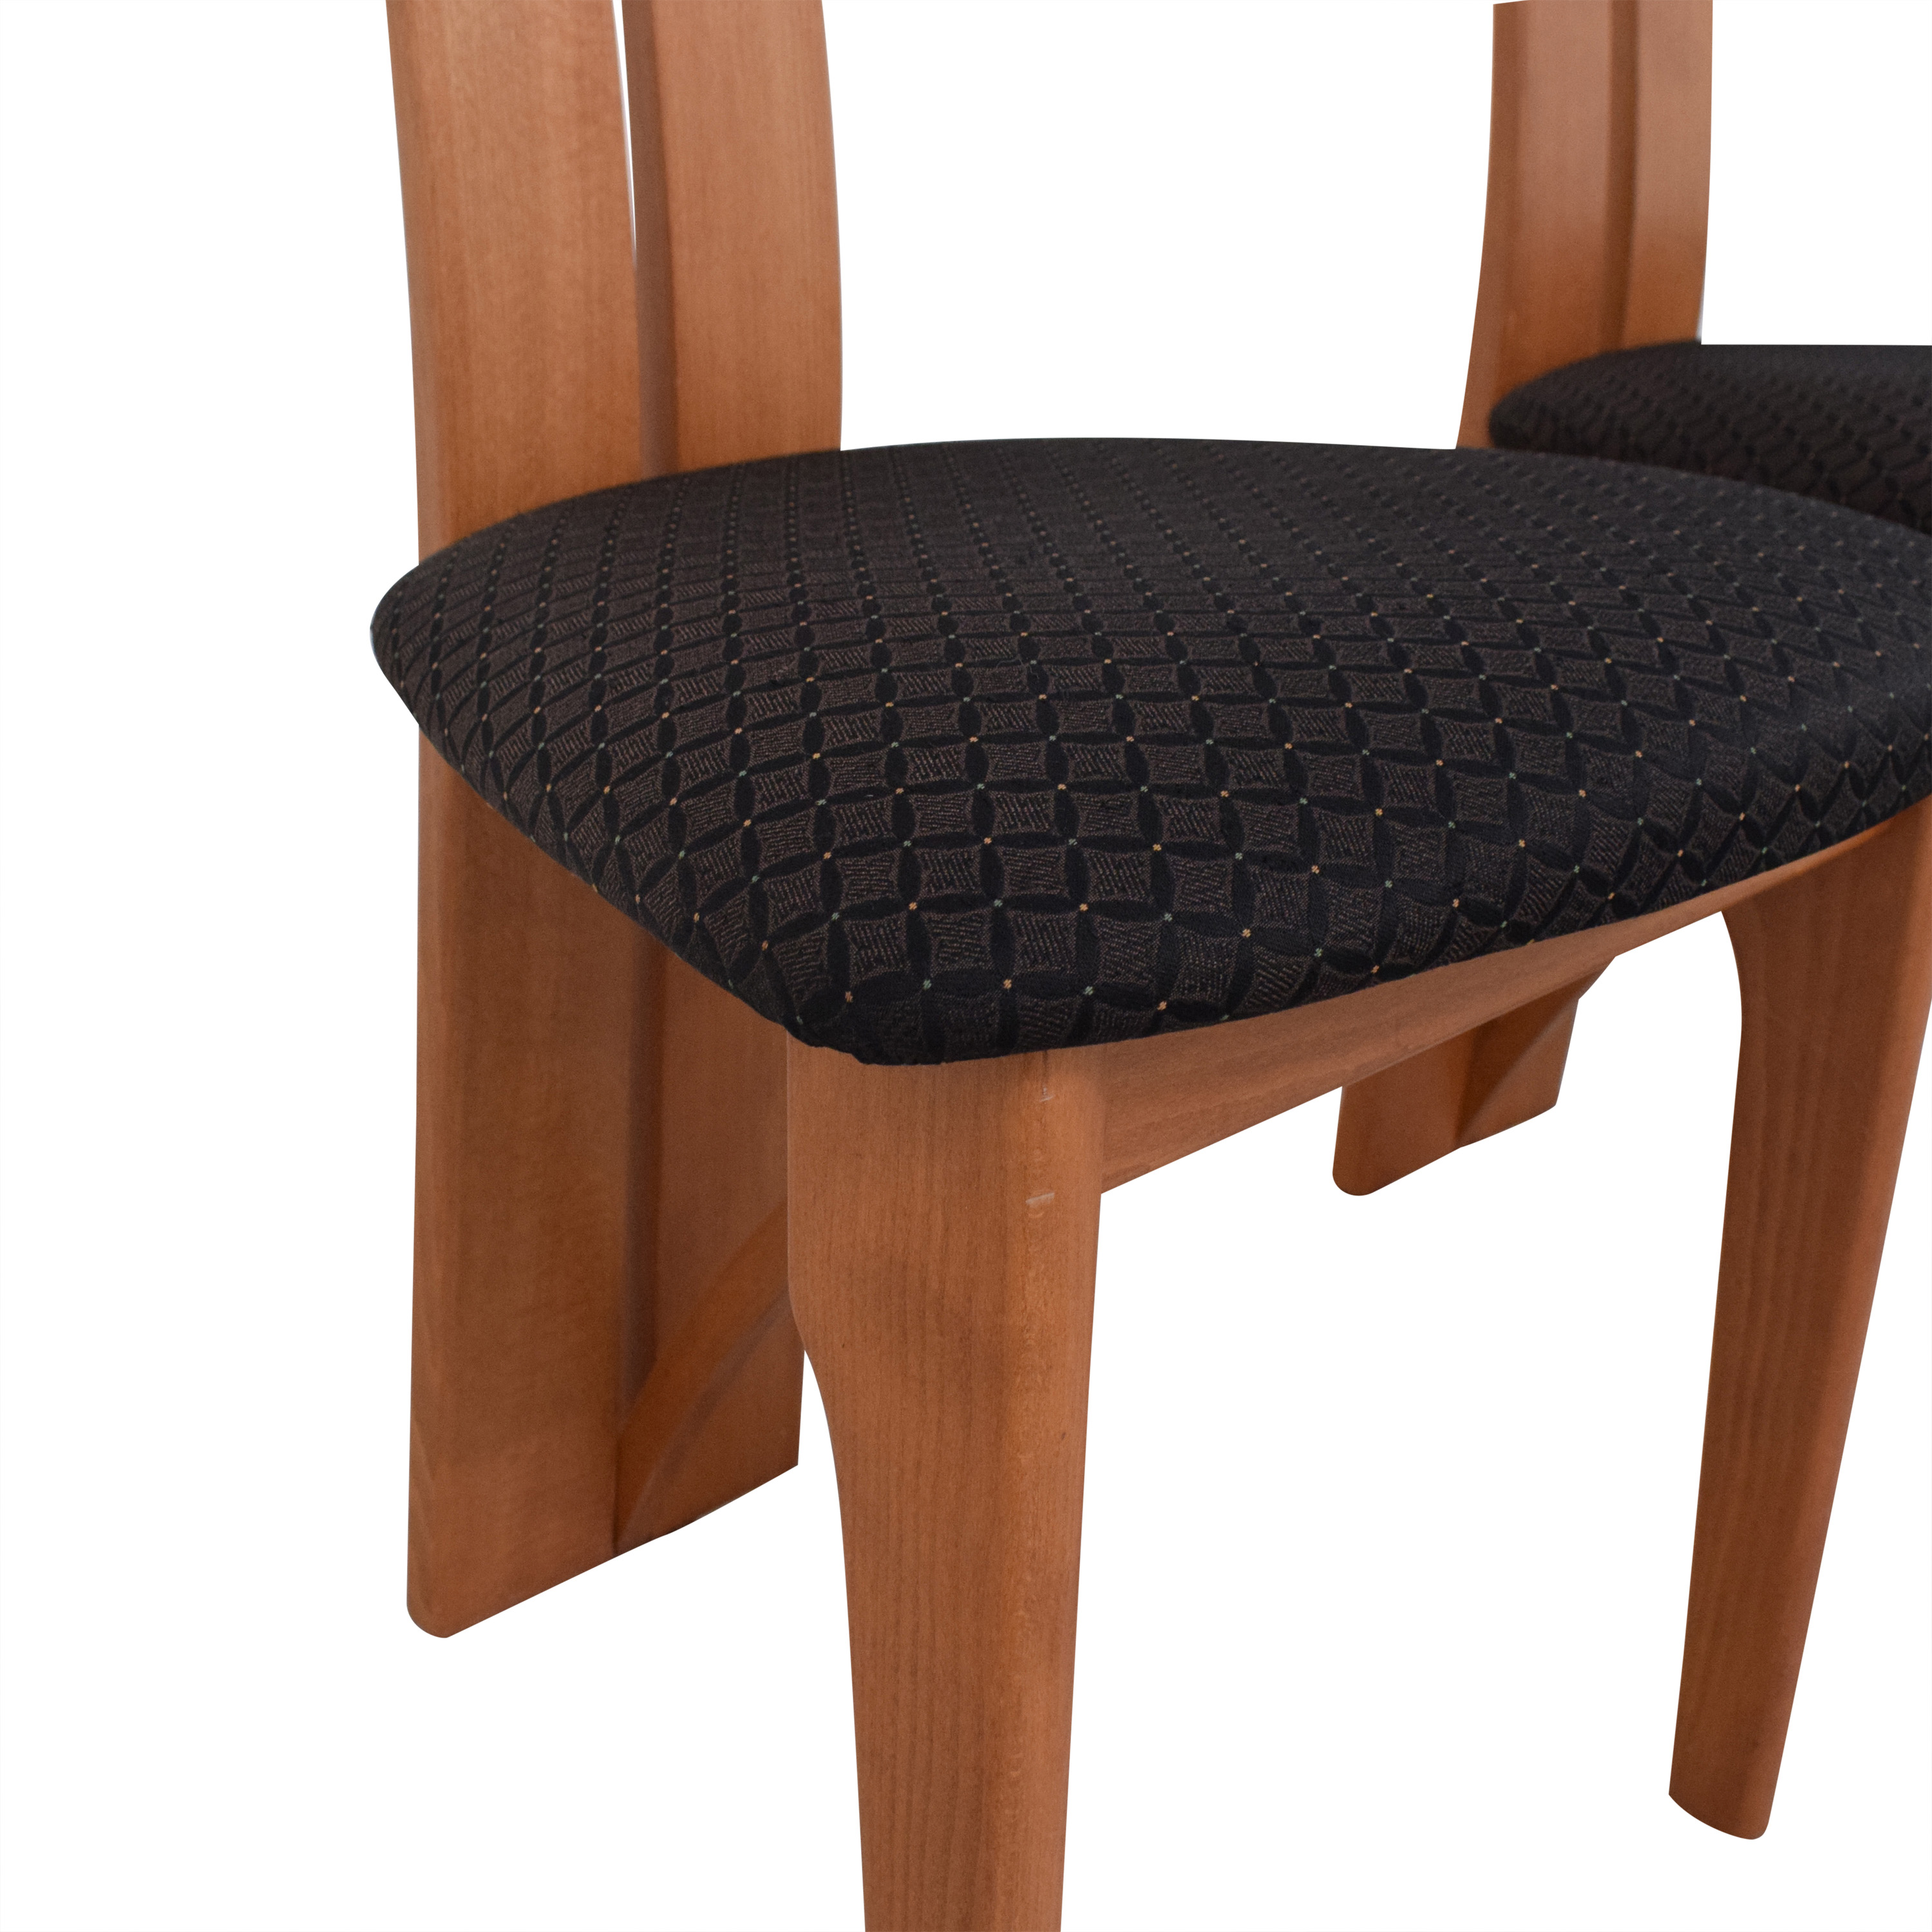 Ello Pietro Costantini Dining Chairs / Dining Chairs